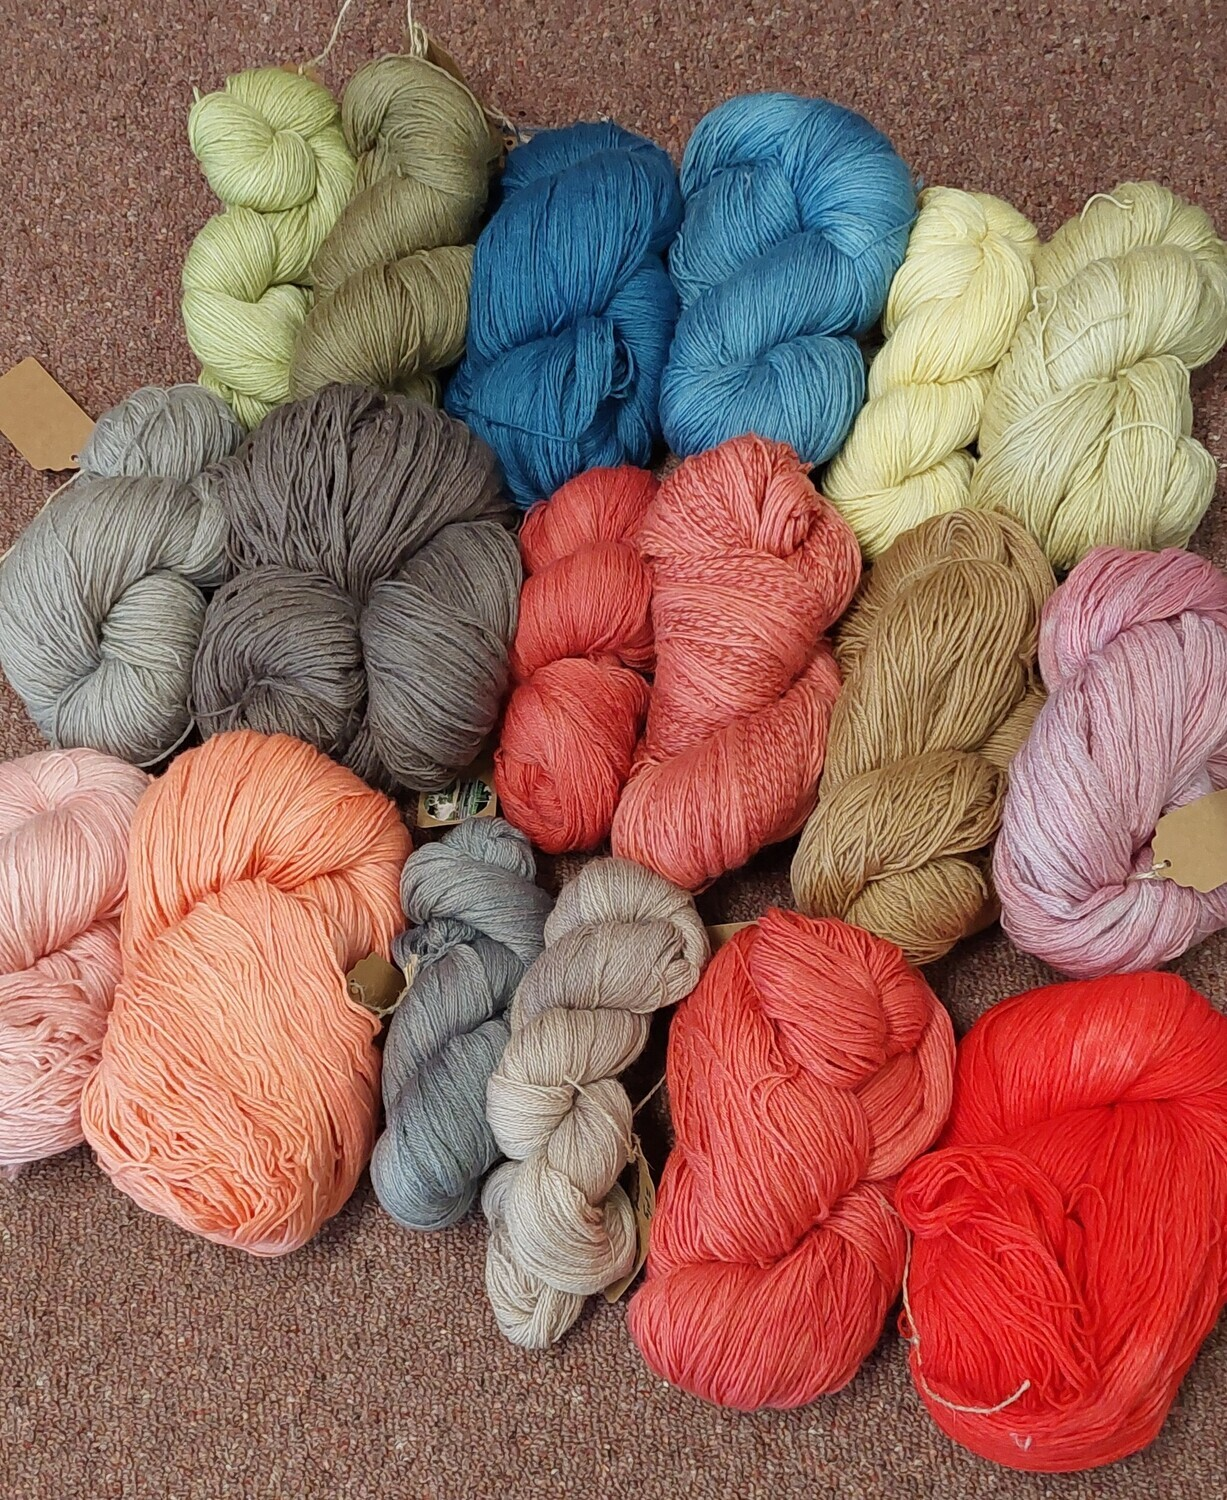 Naturally dyed. Pure Finn yarn in 2 and 4 ply.